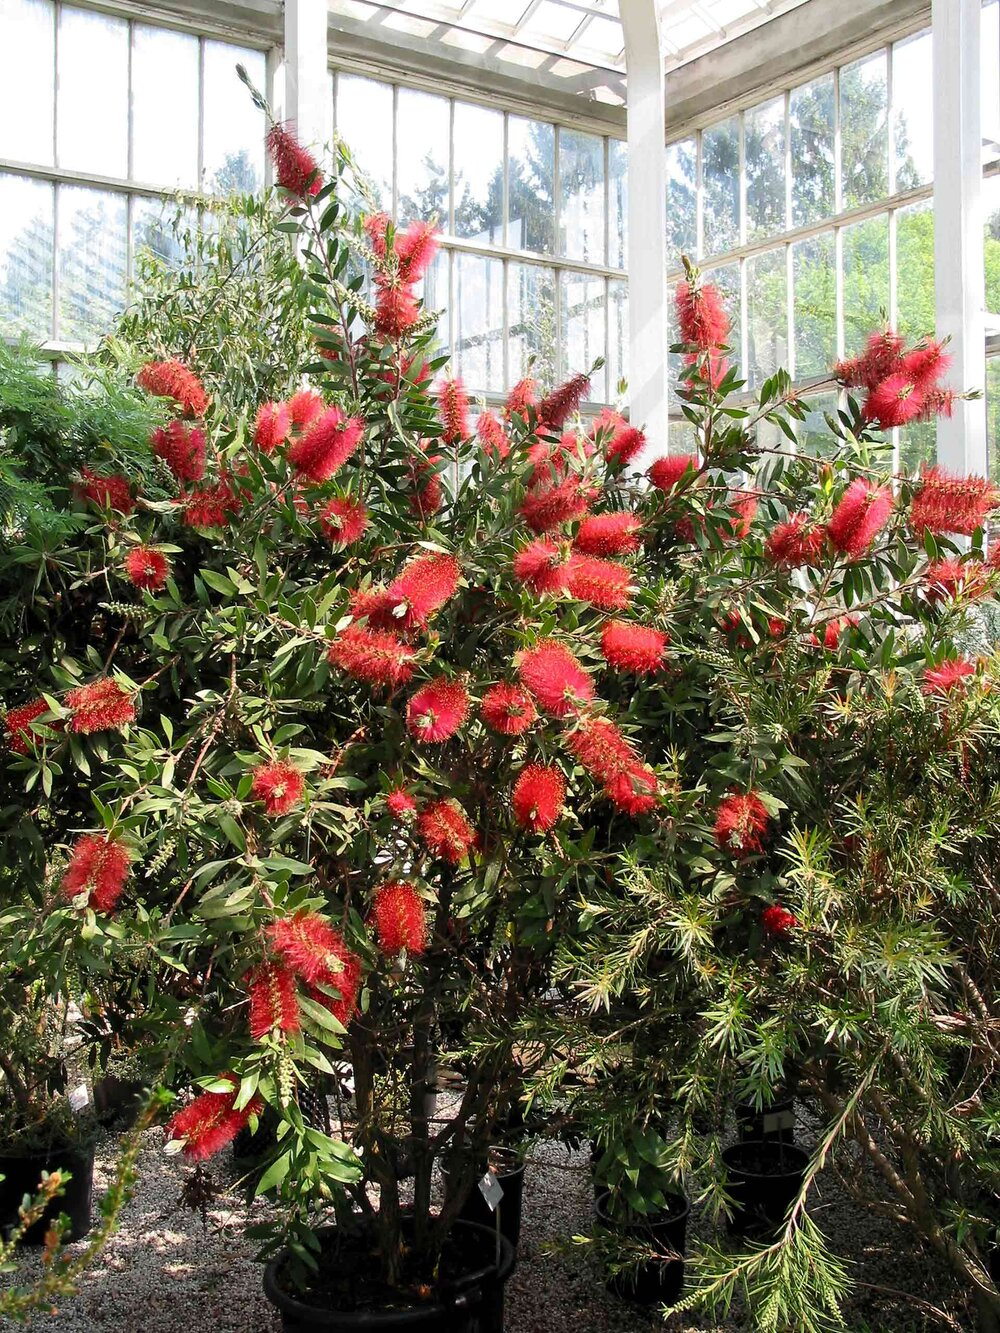 A young  Callistemon citrinus  bush in flower.    Image source